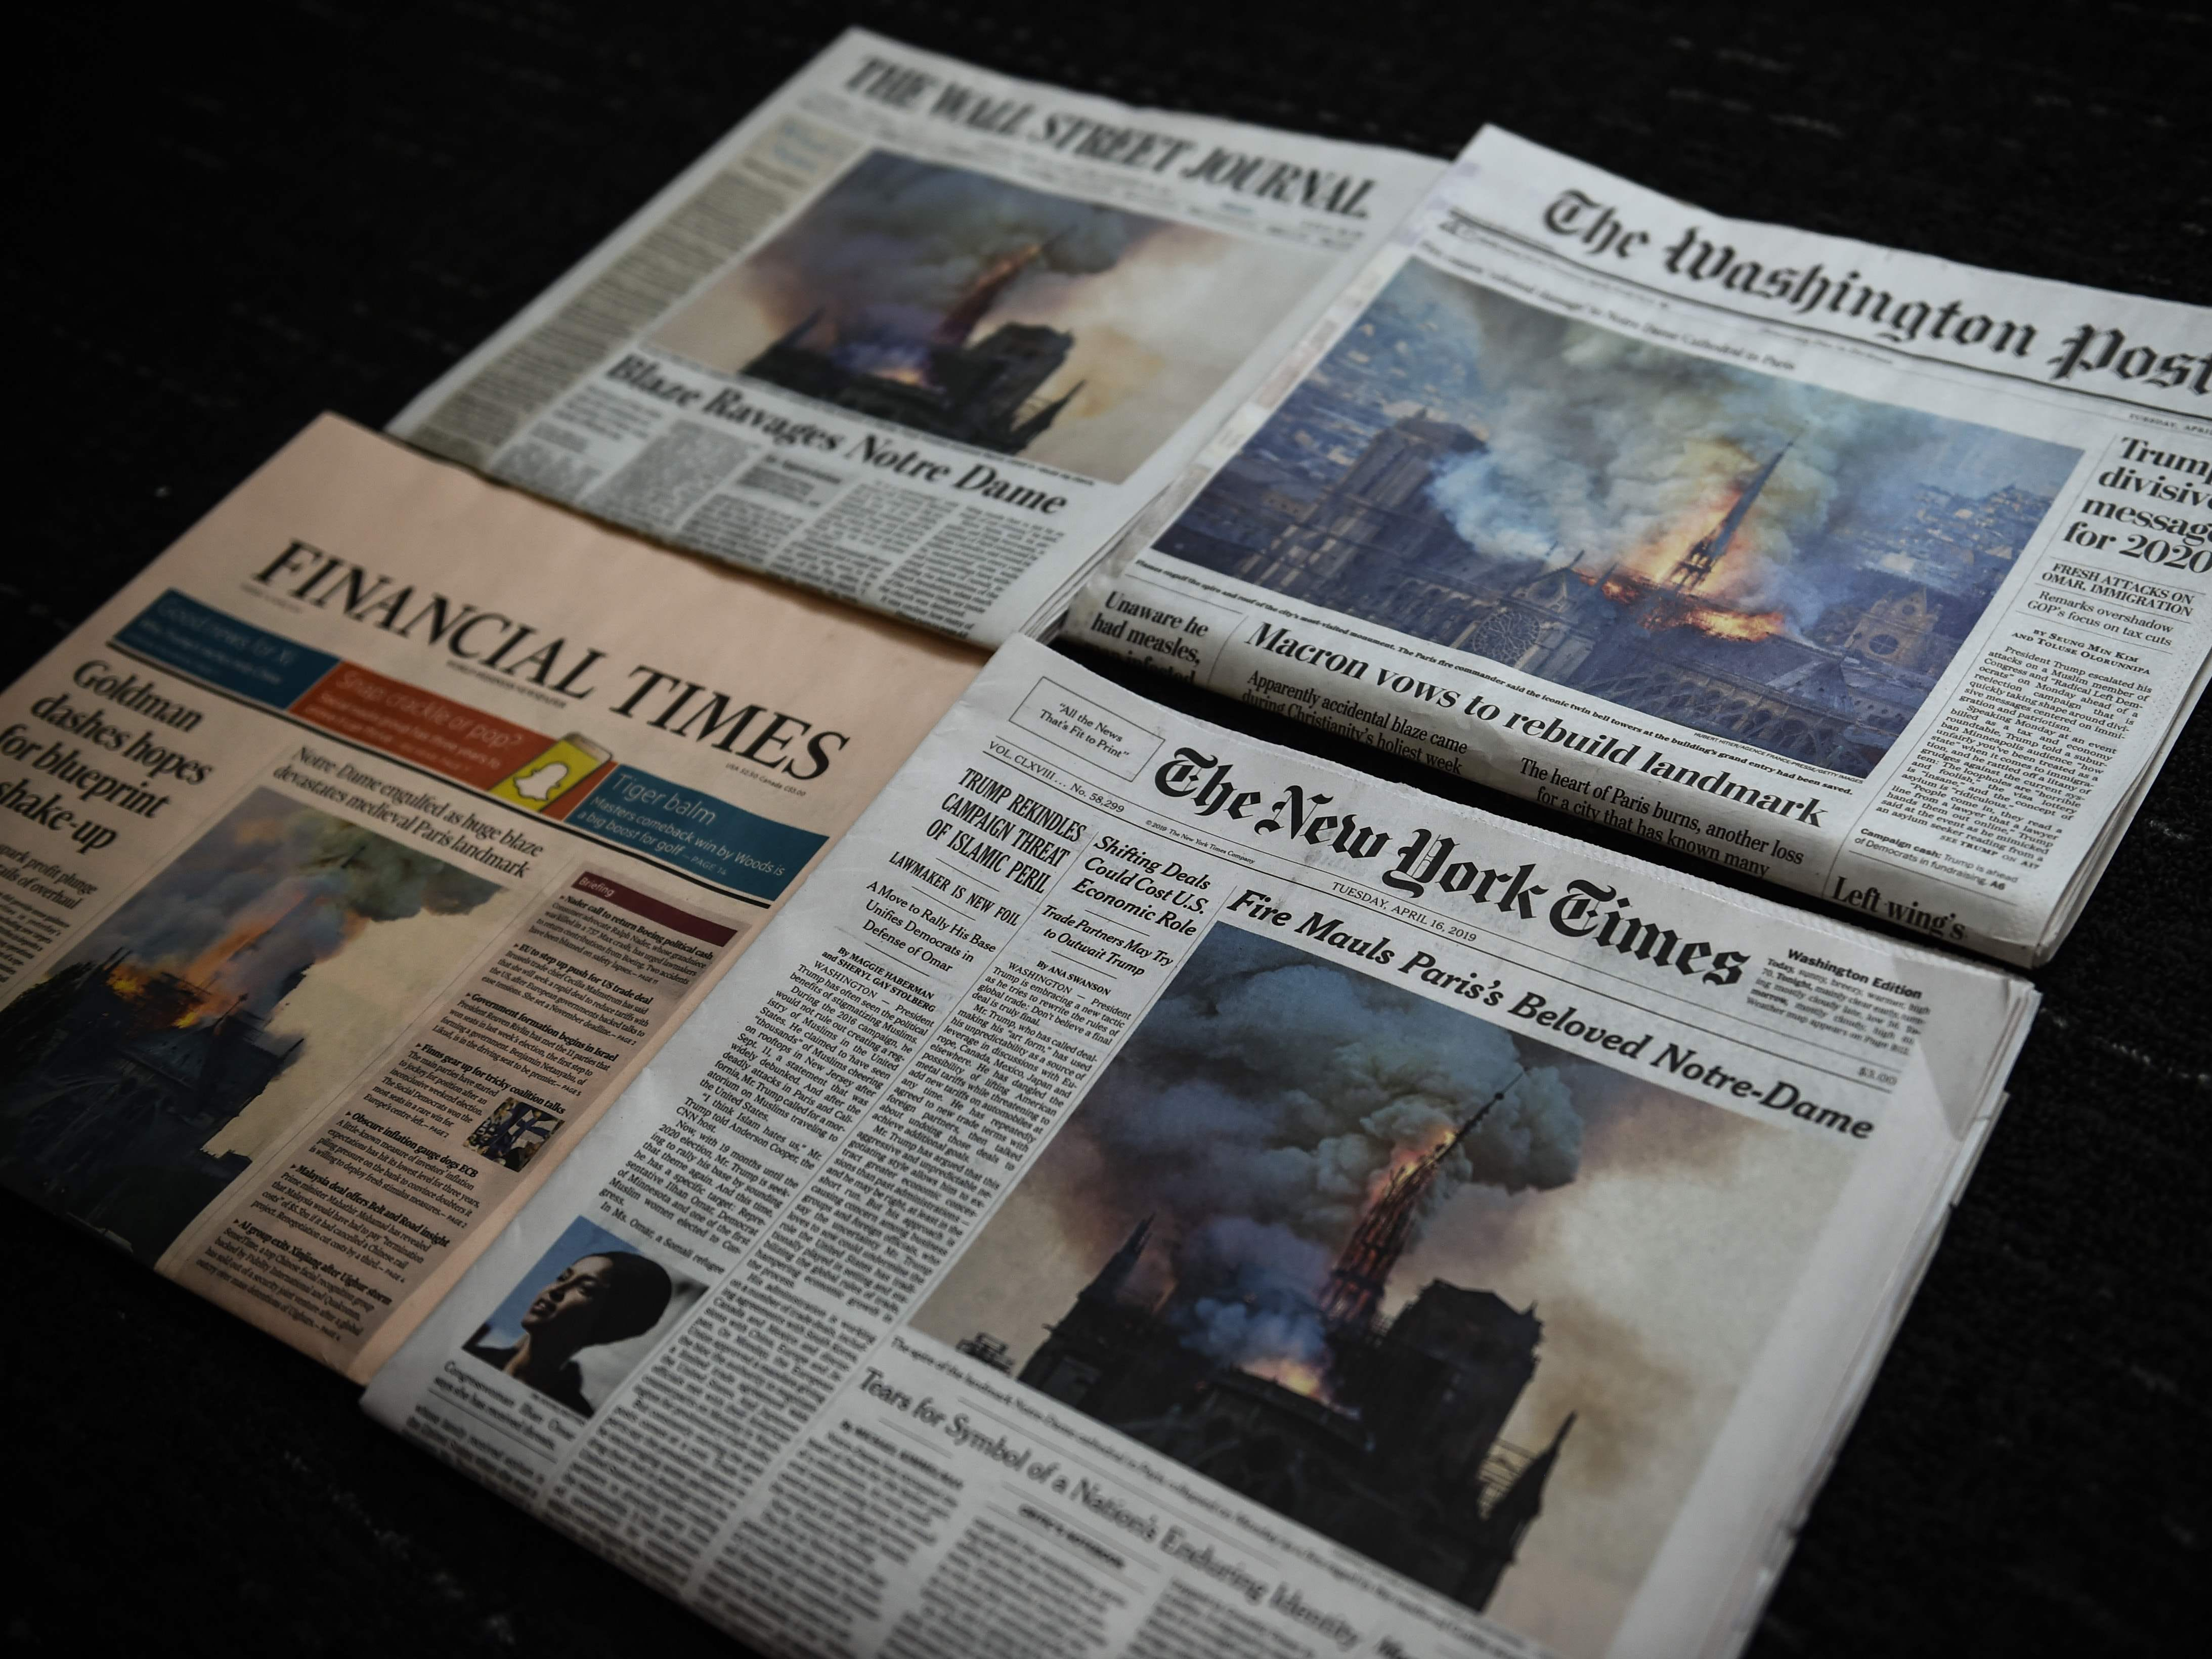 Editions of the New York Times, The Washington Post, The Wall Street Journal and the Financial Times display images of Notre-Dame Cathedral burning in Paris on their front page on April 16, 2019.